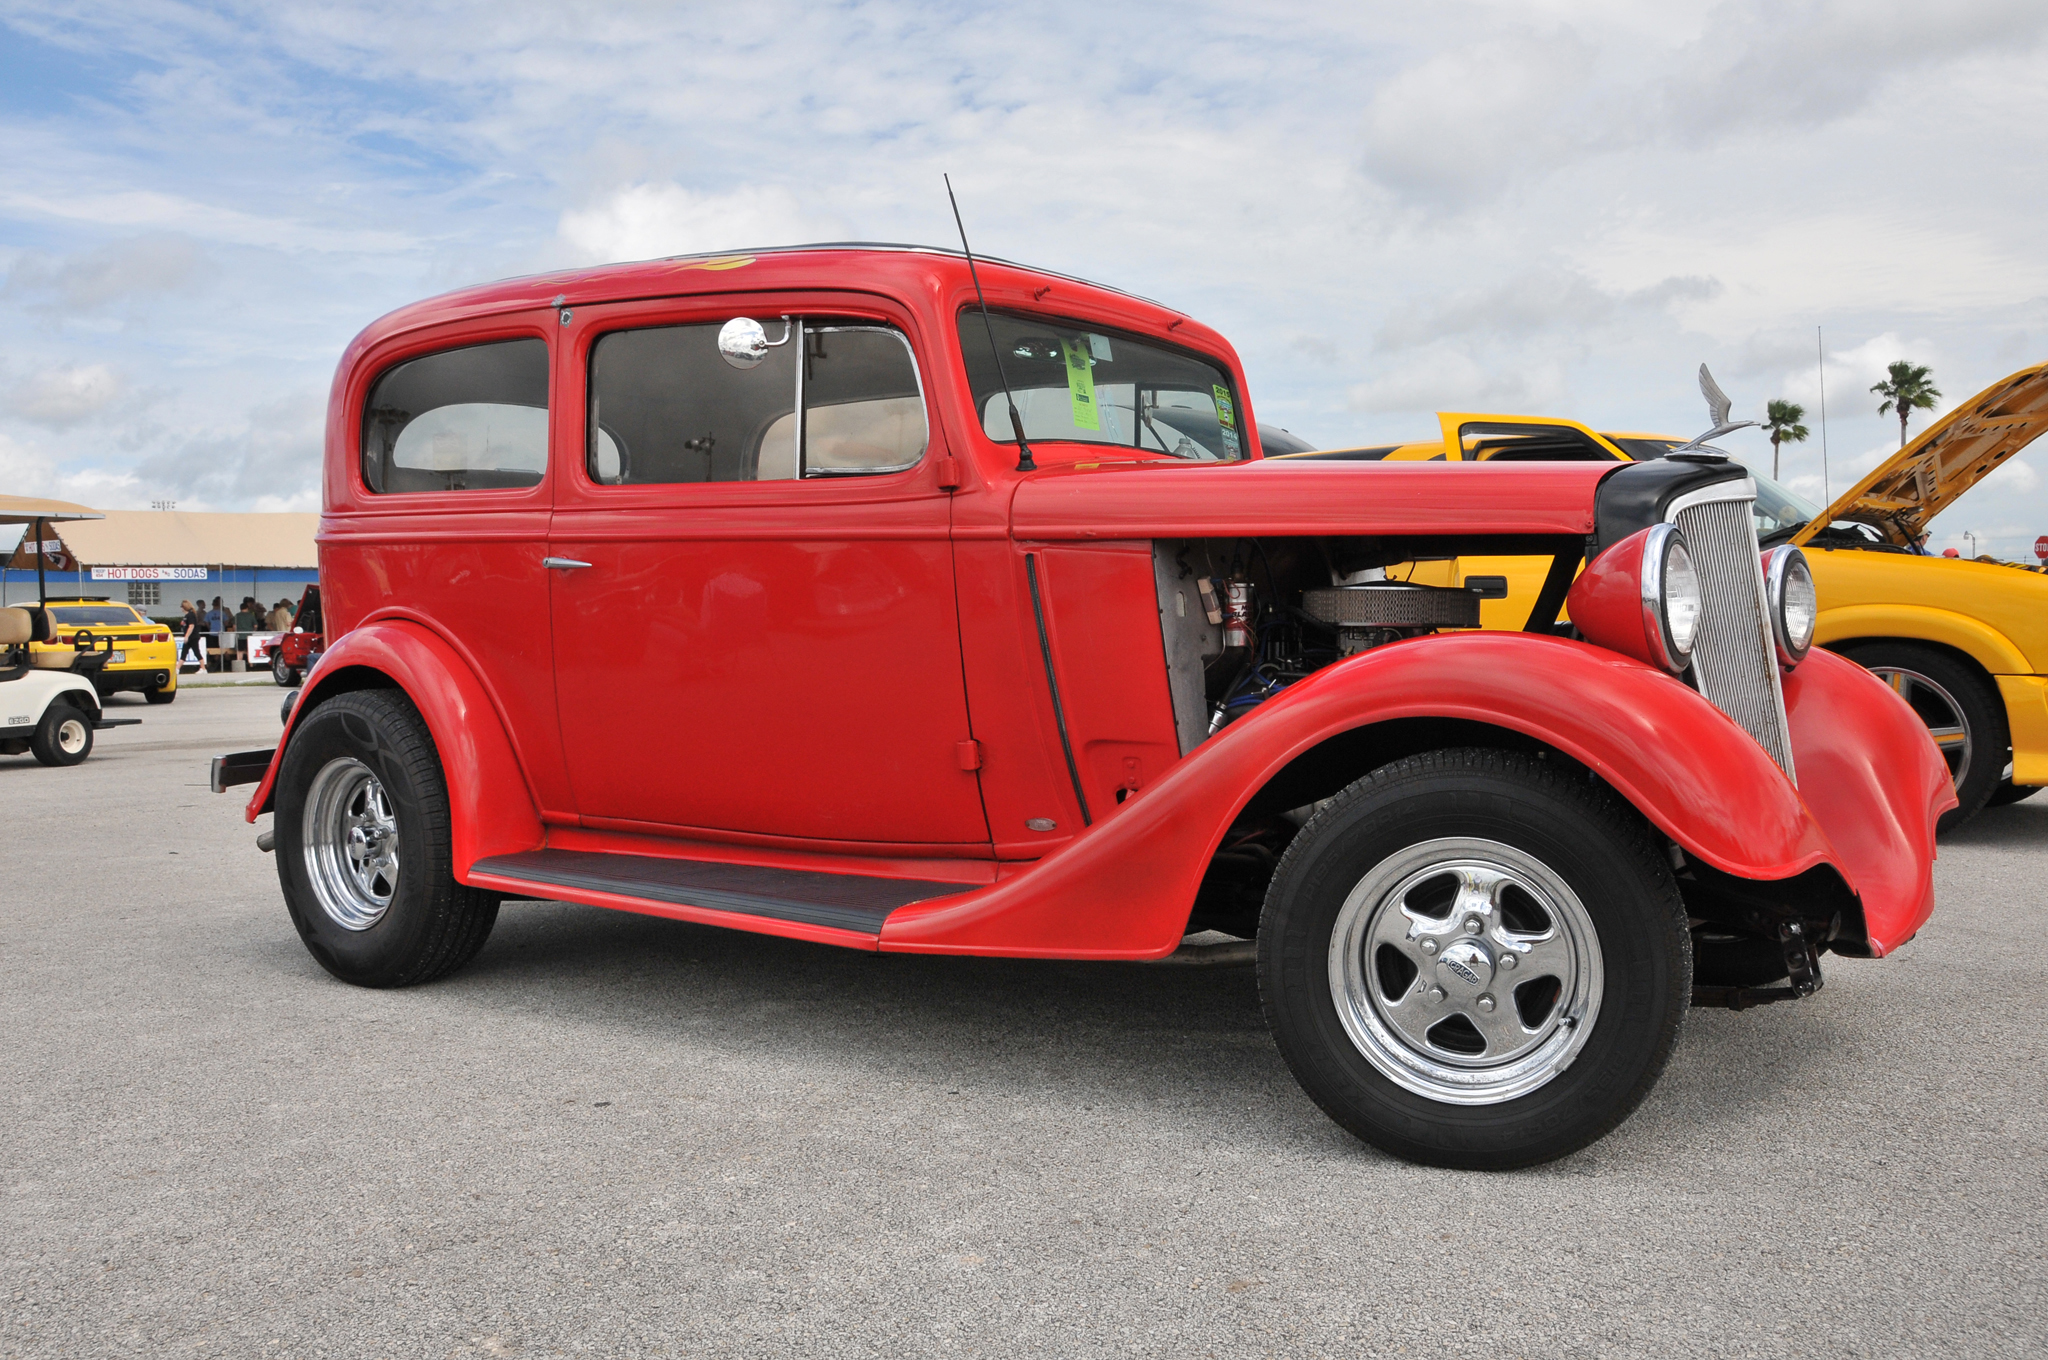 2015 26th Annual Daytona Spring Turkey Run Car Show Hot Rod Network Chevy 327 Power Steering Ckets Stuff With A 350 Train Nestled Under The Tilt Hood Along Disc Brakes And An Air Conditioned Leather Interior